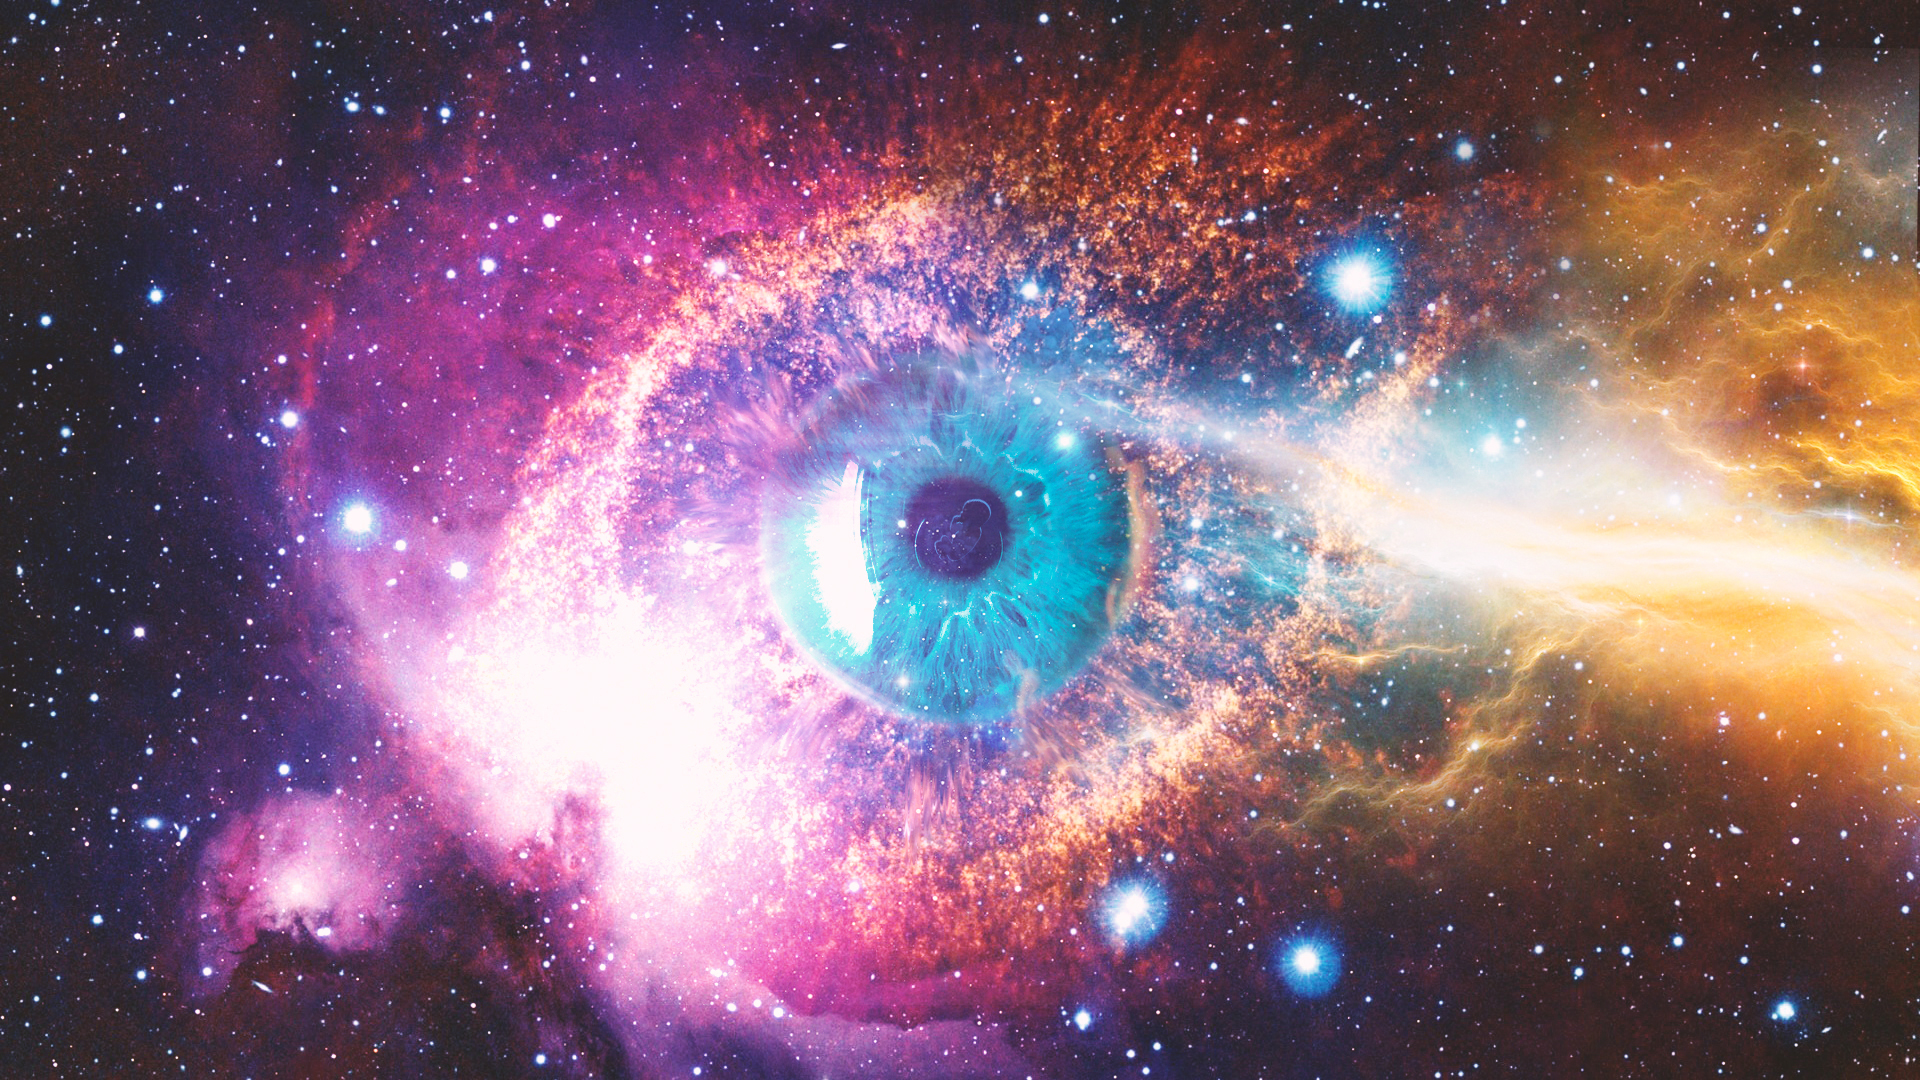 Free Download Wallpaper 3d Windows 7 Cosmic Space Eye Wallpapers Hd Wallpapers Id 24169